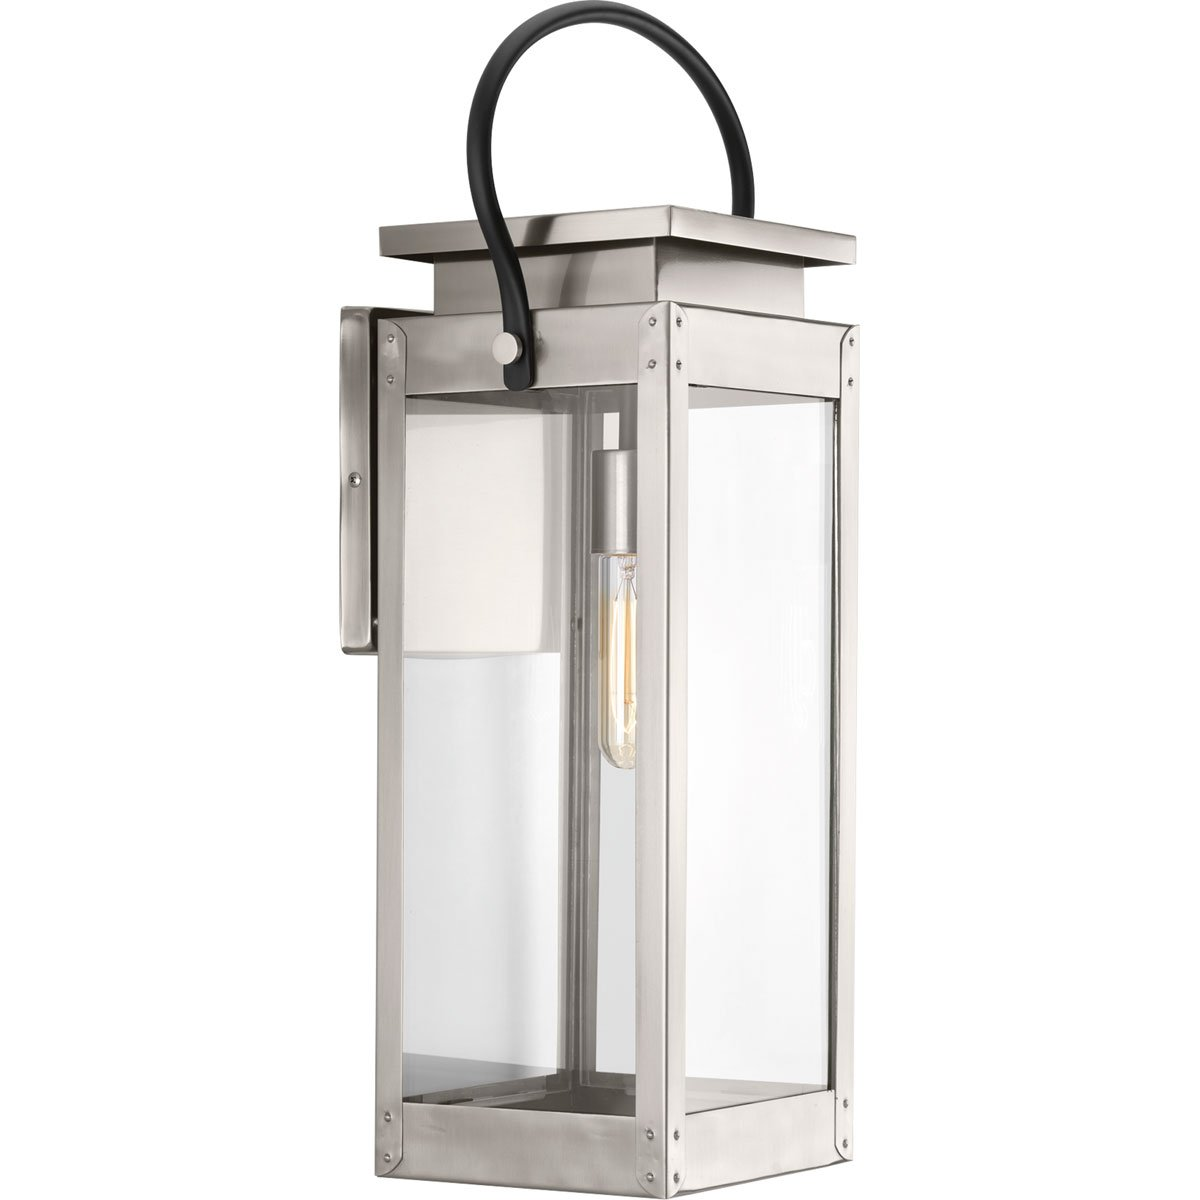 Progress Lighting P560006-135 Union Square One-Light Large Wall Lantern, Stainless Steel